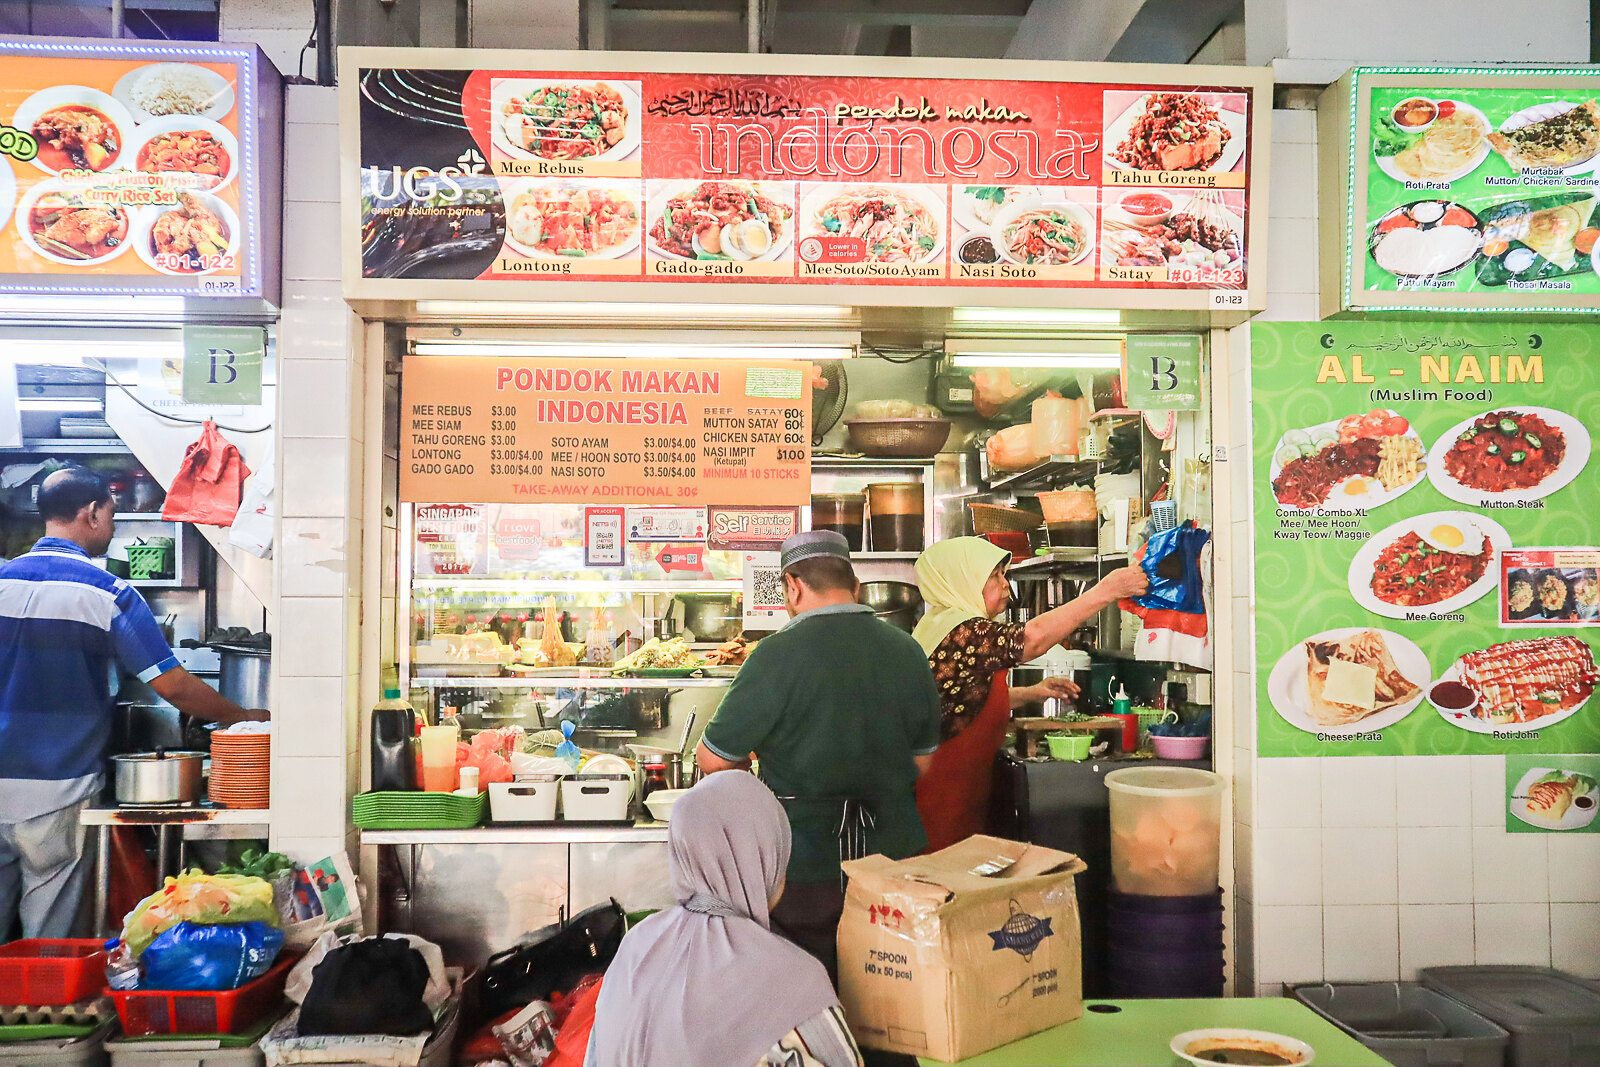 Albert Centre Market and Food Centre - Pondok Makan Indonesia Stall Front